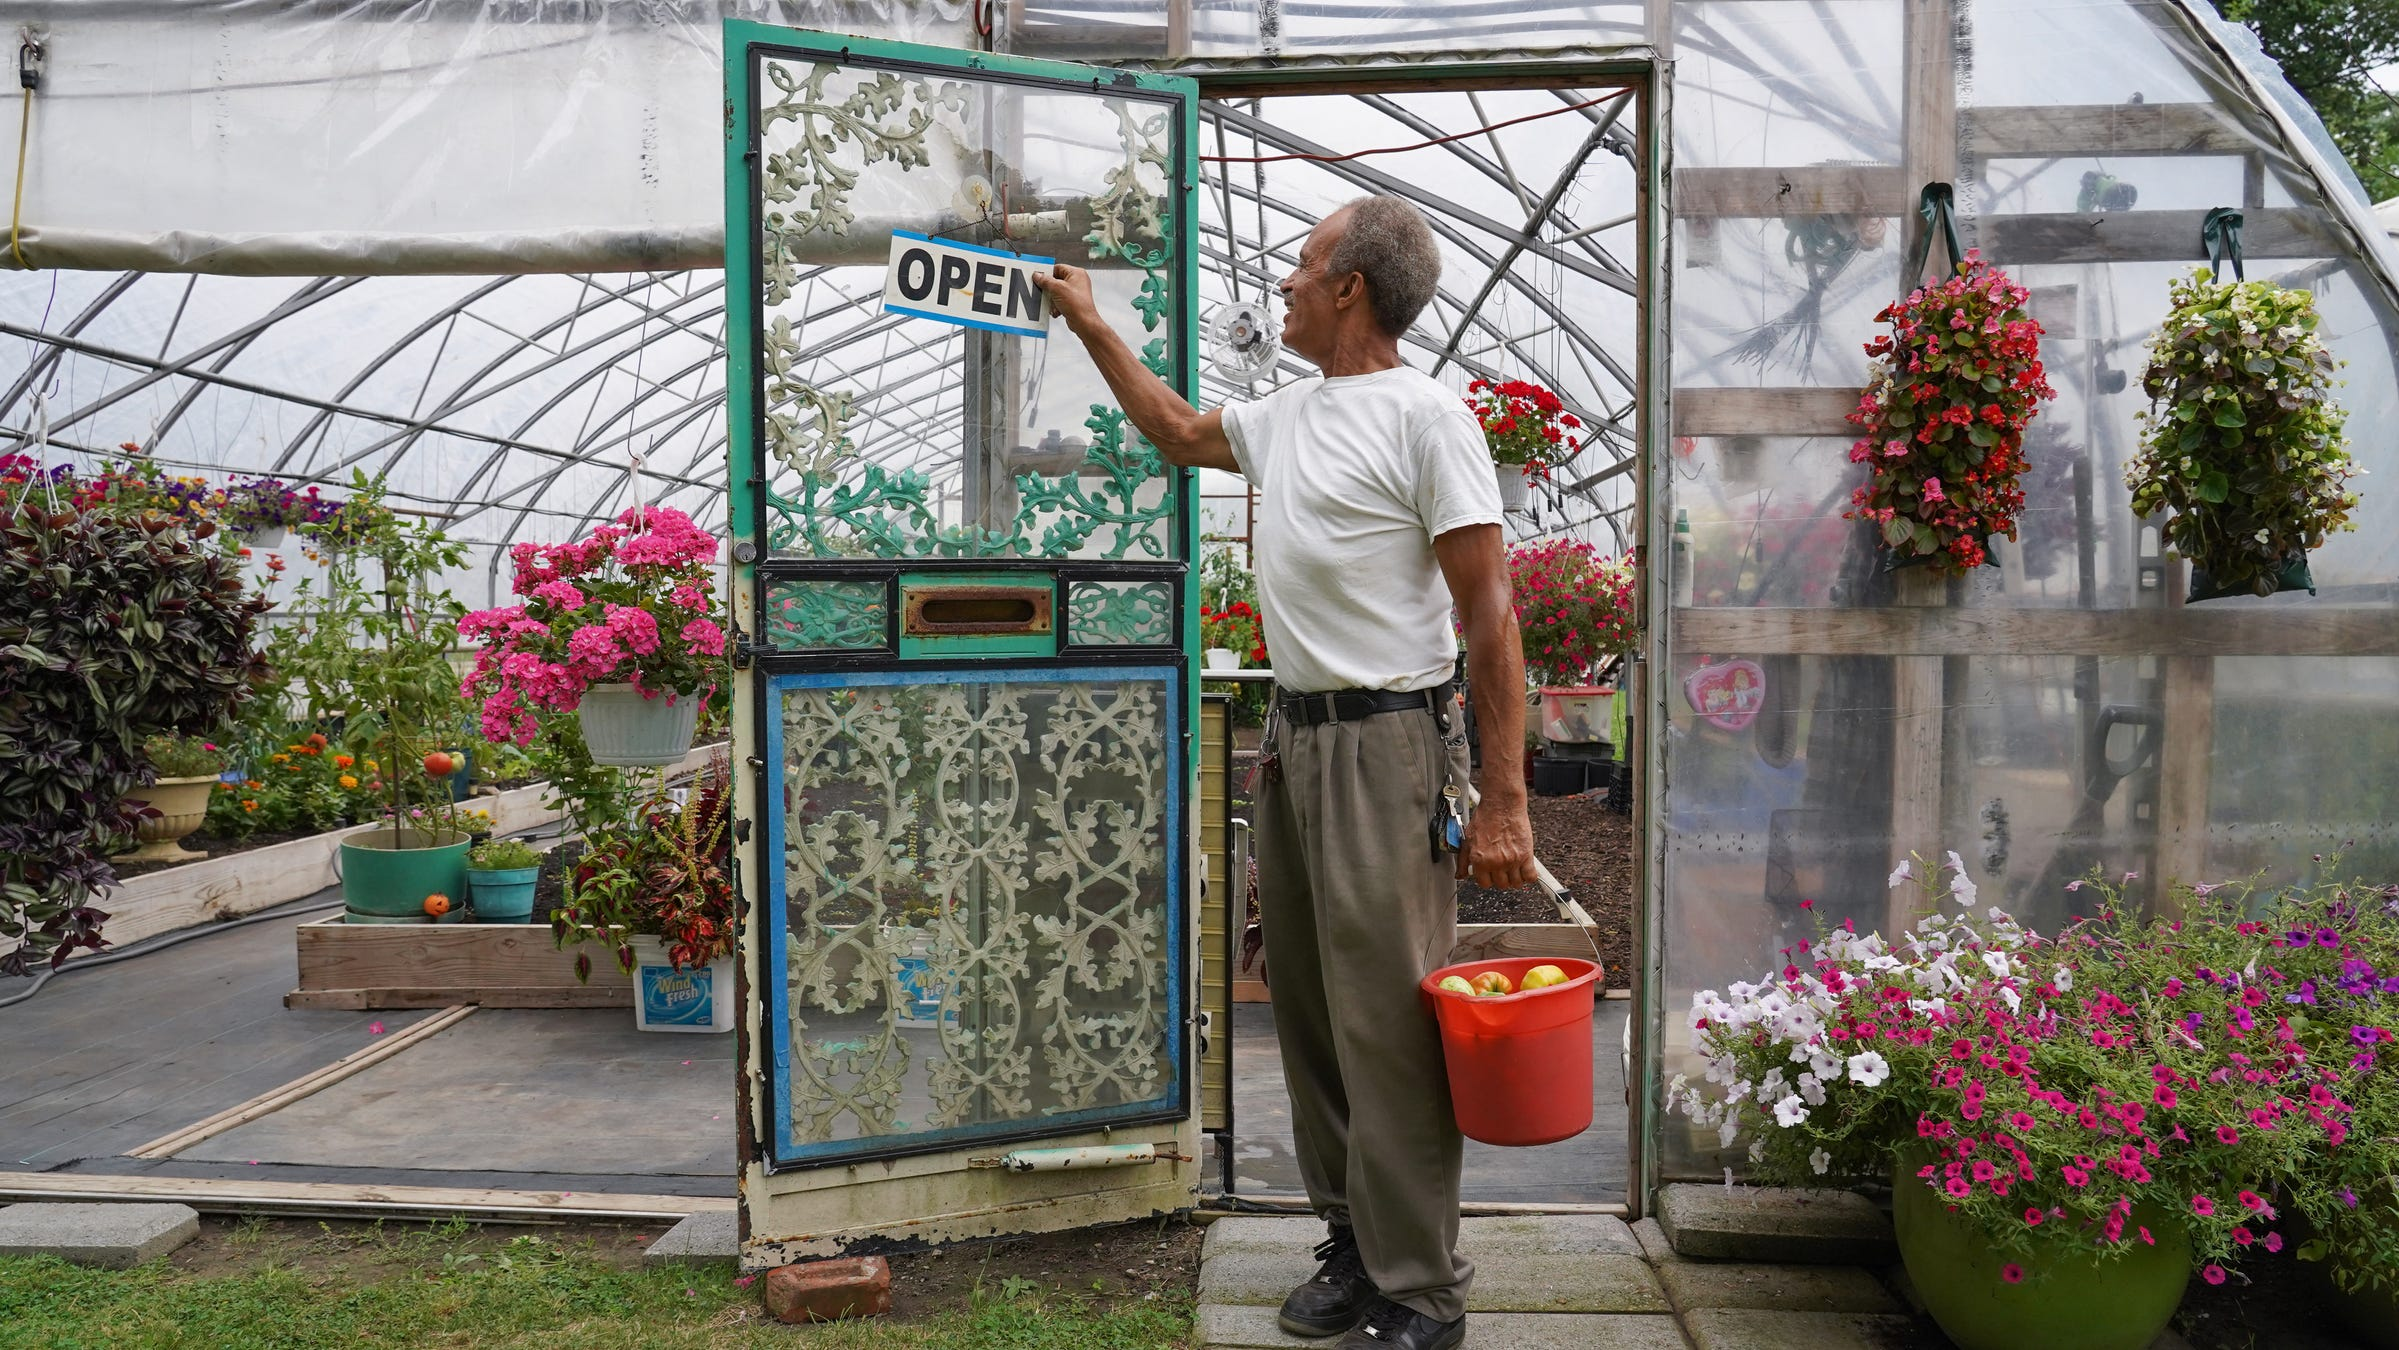 Detroit flower man grows hope, brings beauty to community